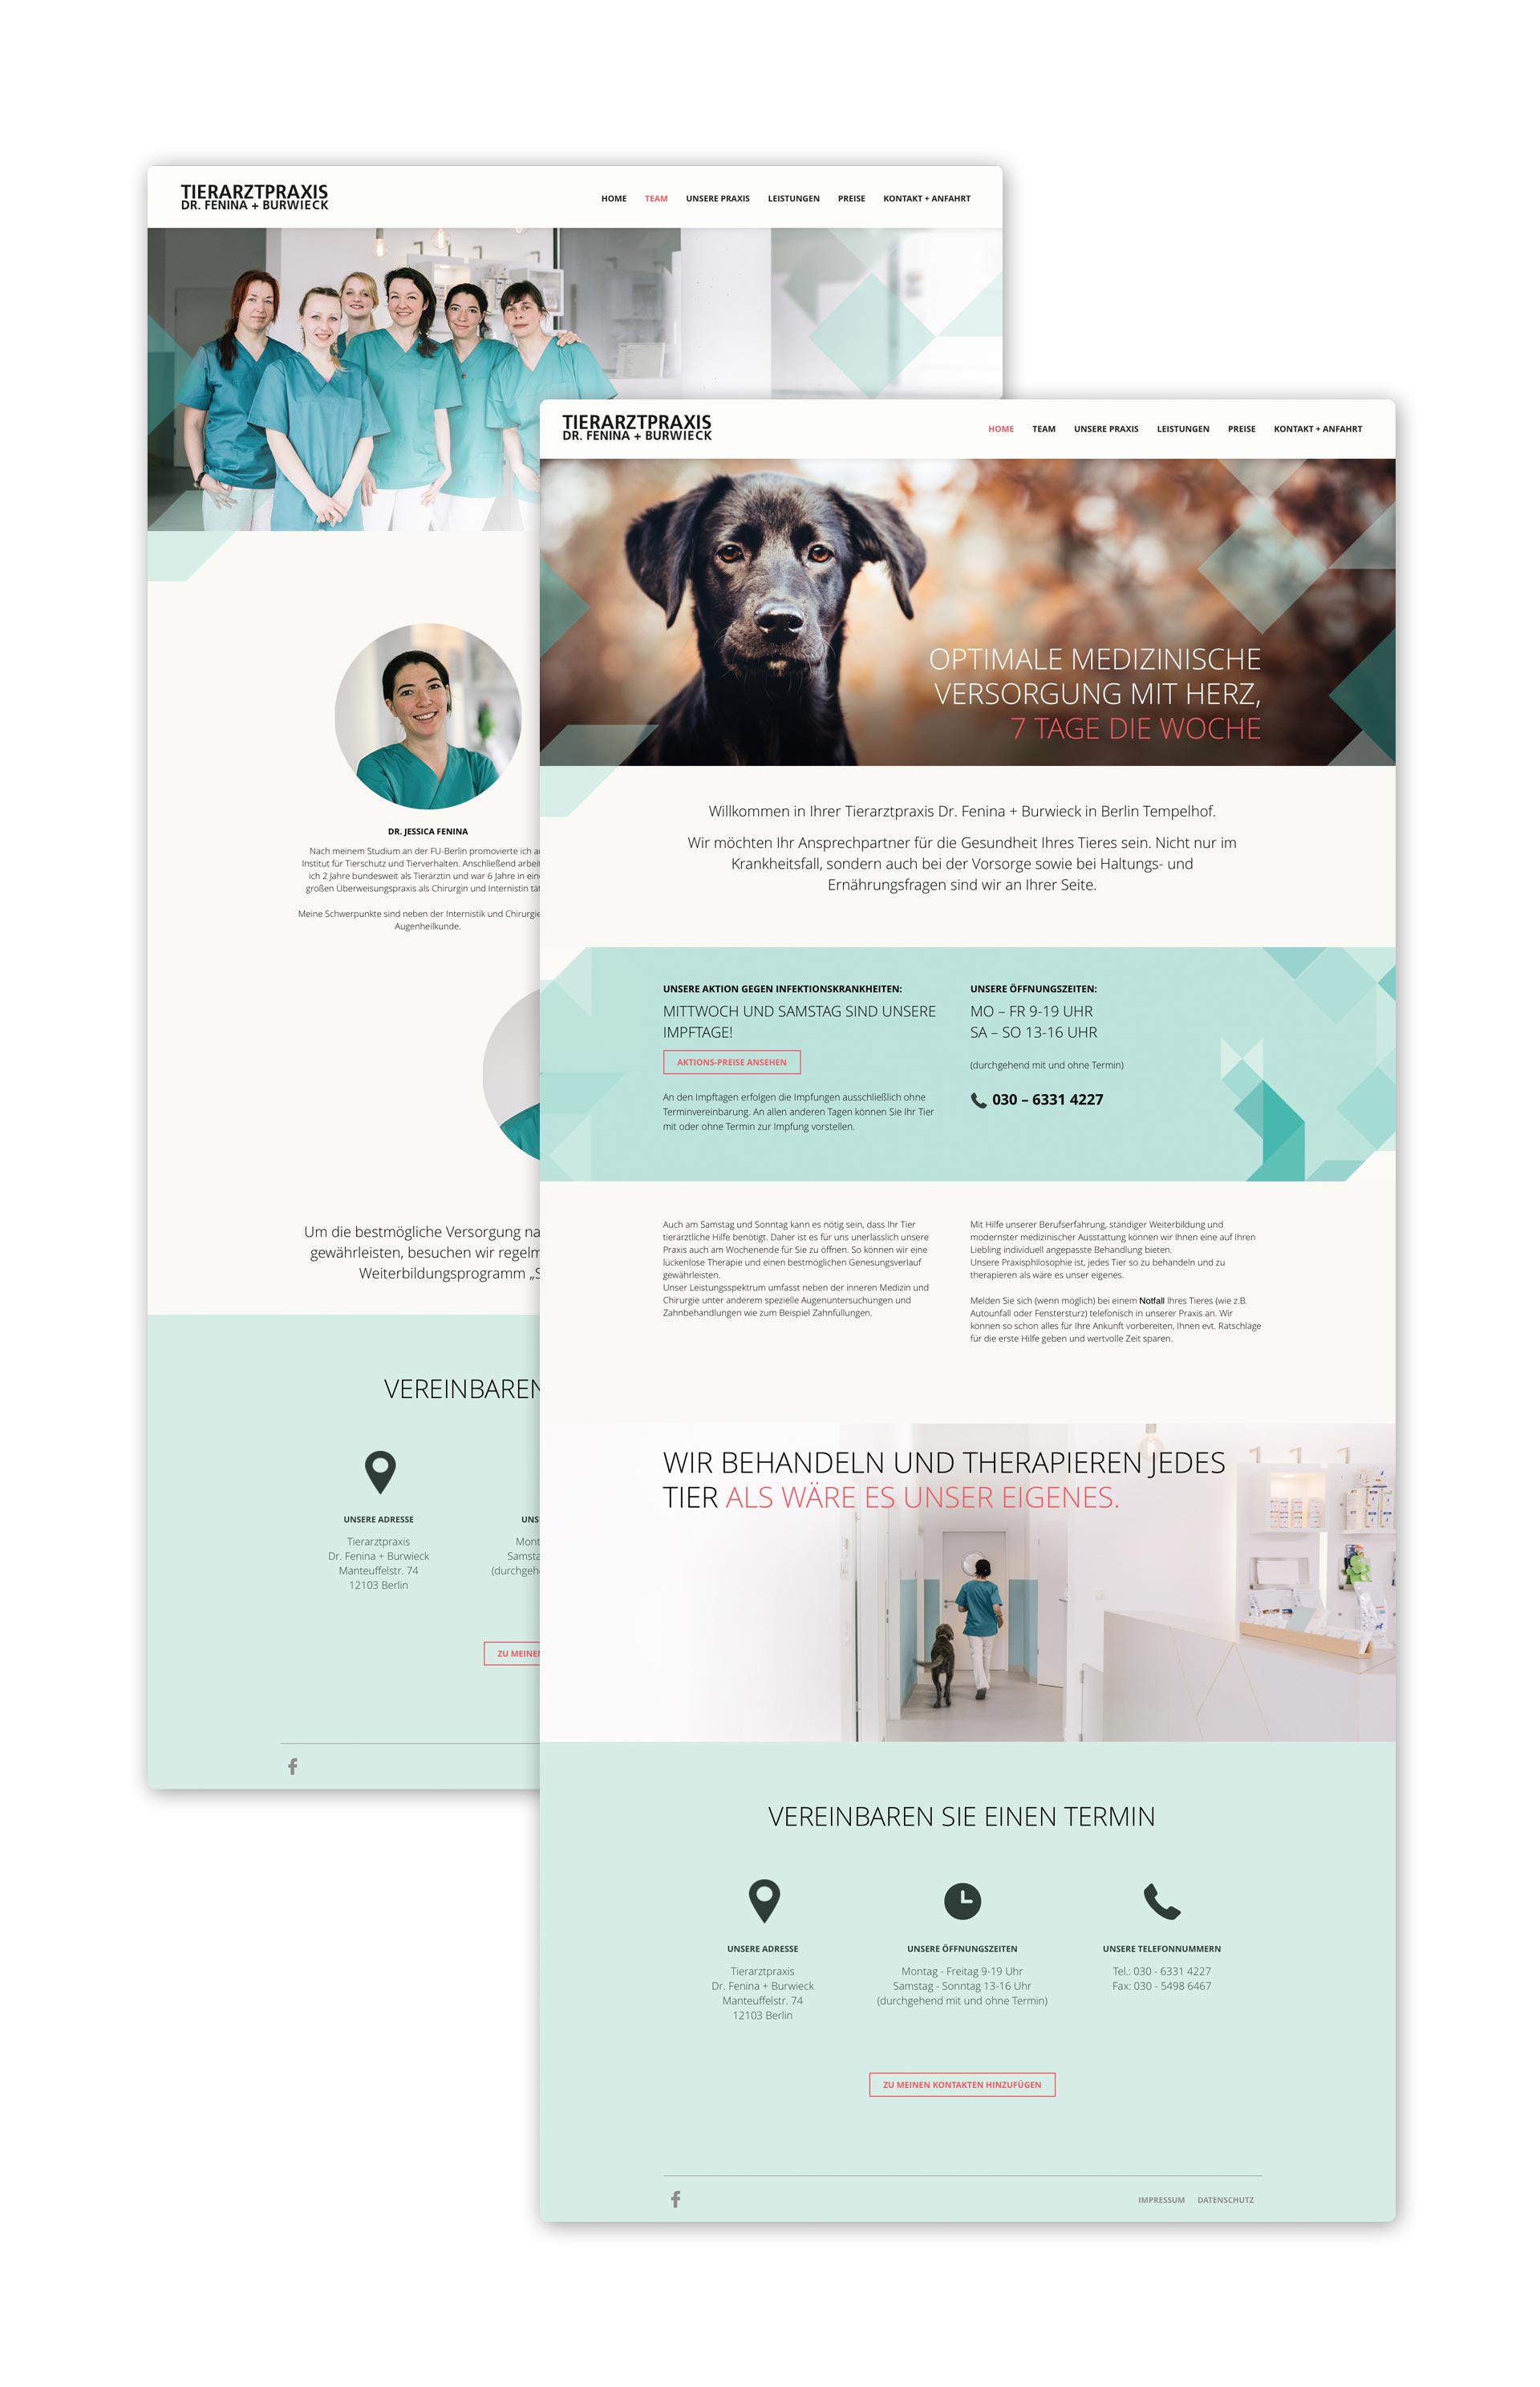 blokstudio_Tierarztpraxis_Dr_Fenina_Burwiek_Webdesign_Screens